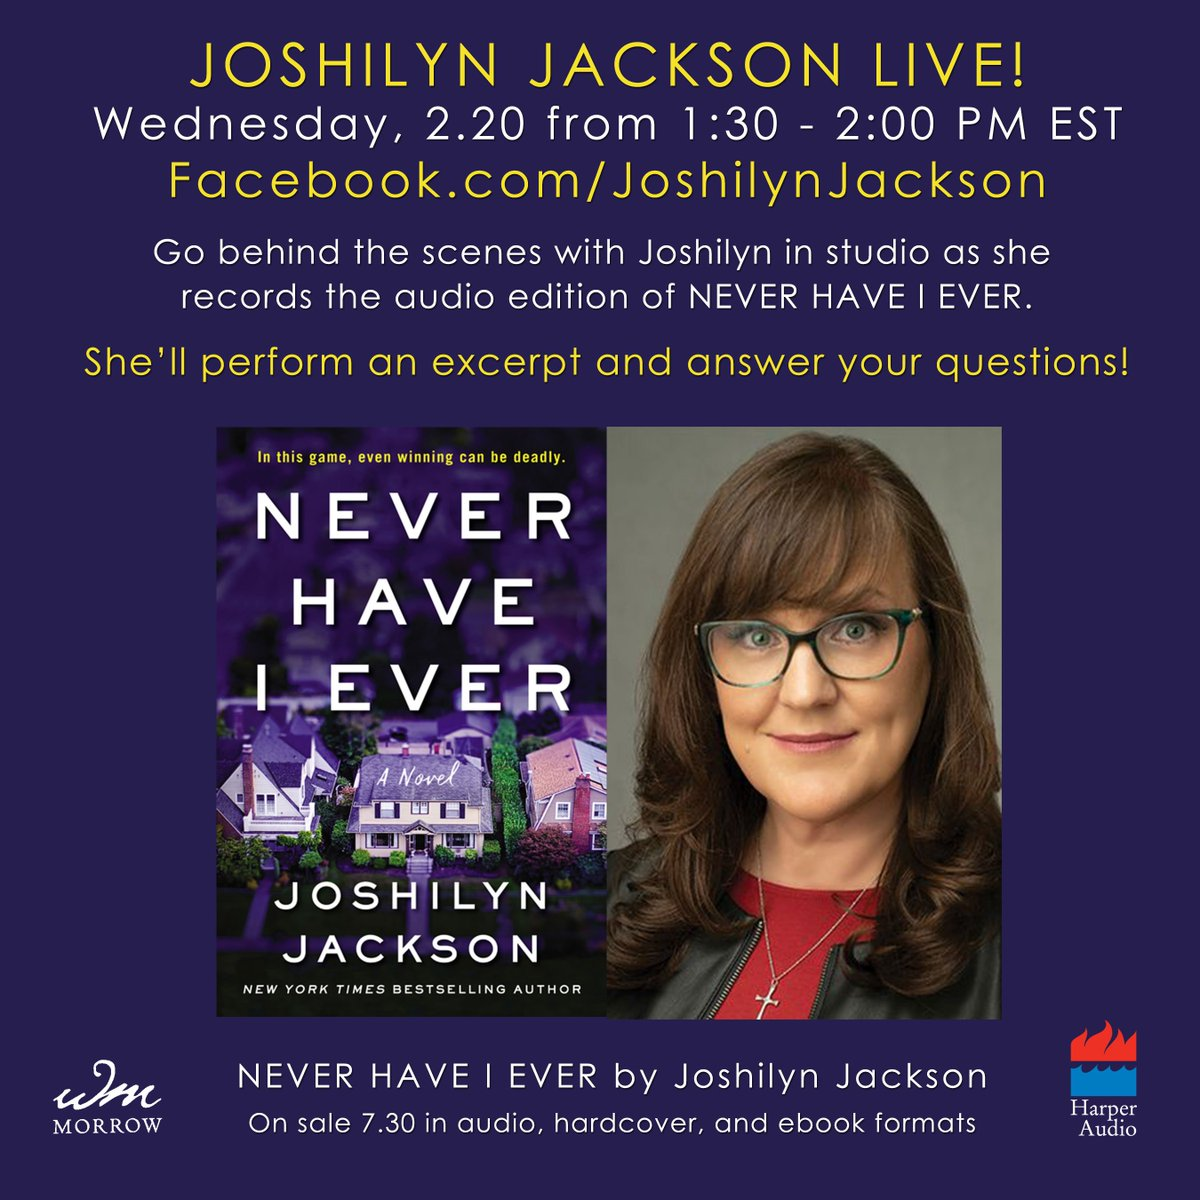 Less than 30 minutes until we are LIVE IN STUDIO WITH @JoshilynJackson over on https://www.facebook.com/JoshilynJackson!!!! @WmMorrowBooks @HarperCollins